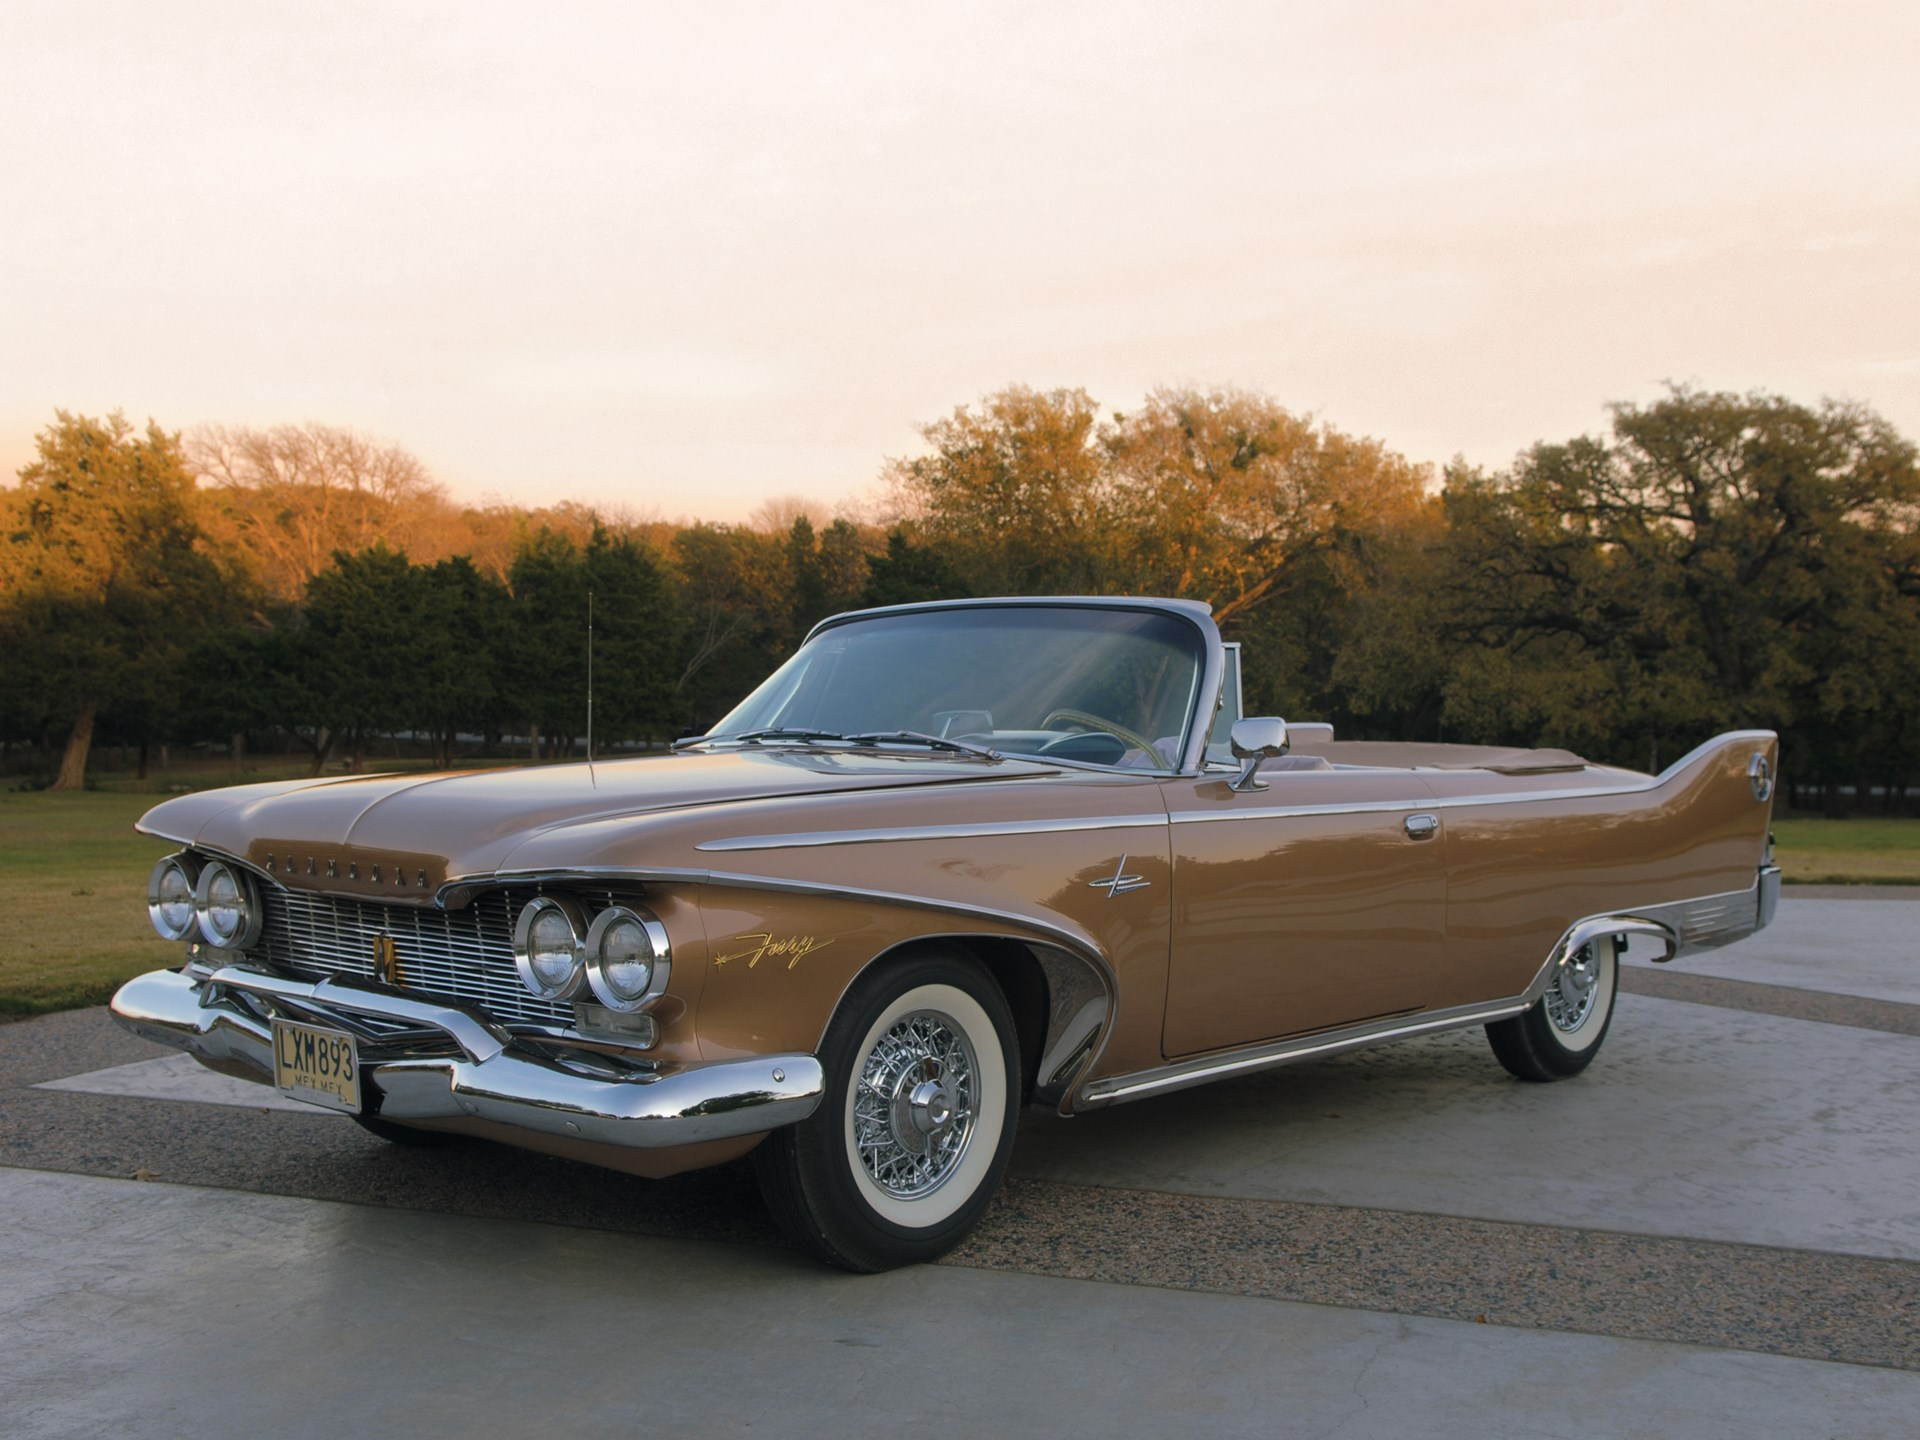 Image result for rm hershey 1960 Plymouth Fury Convertible